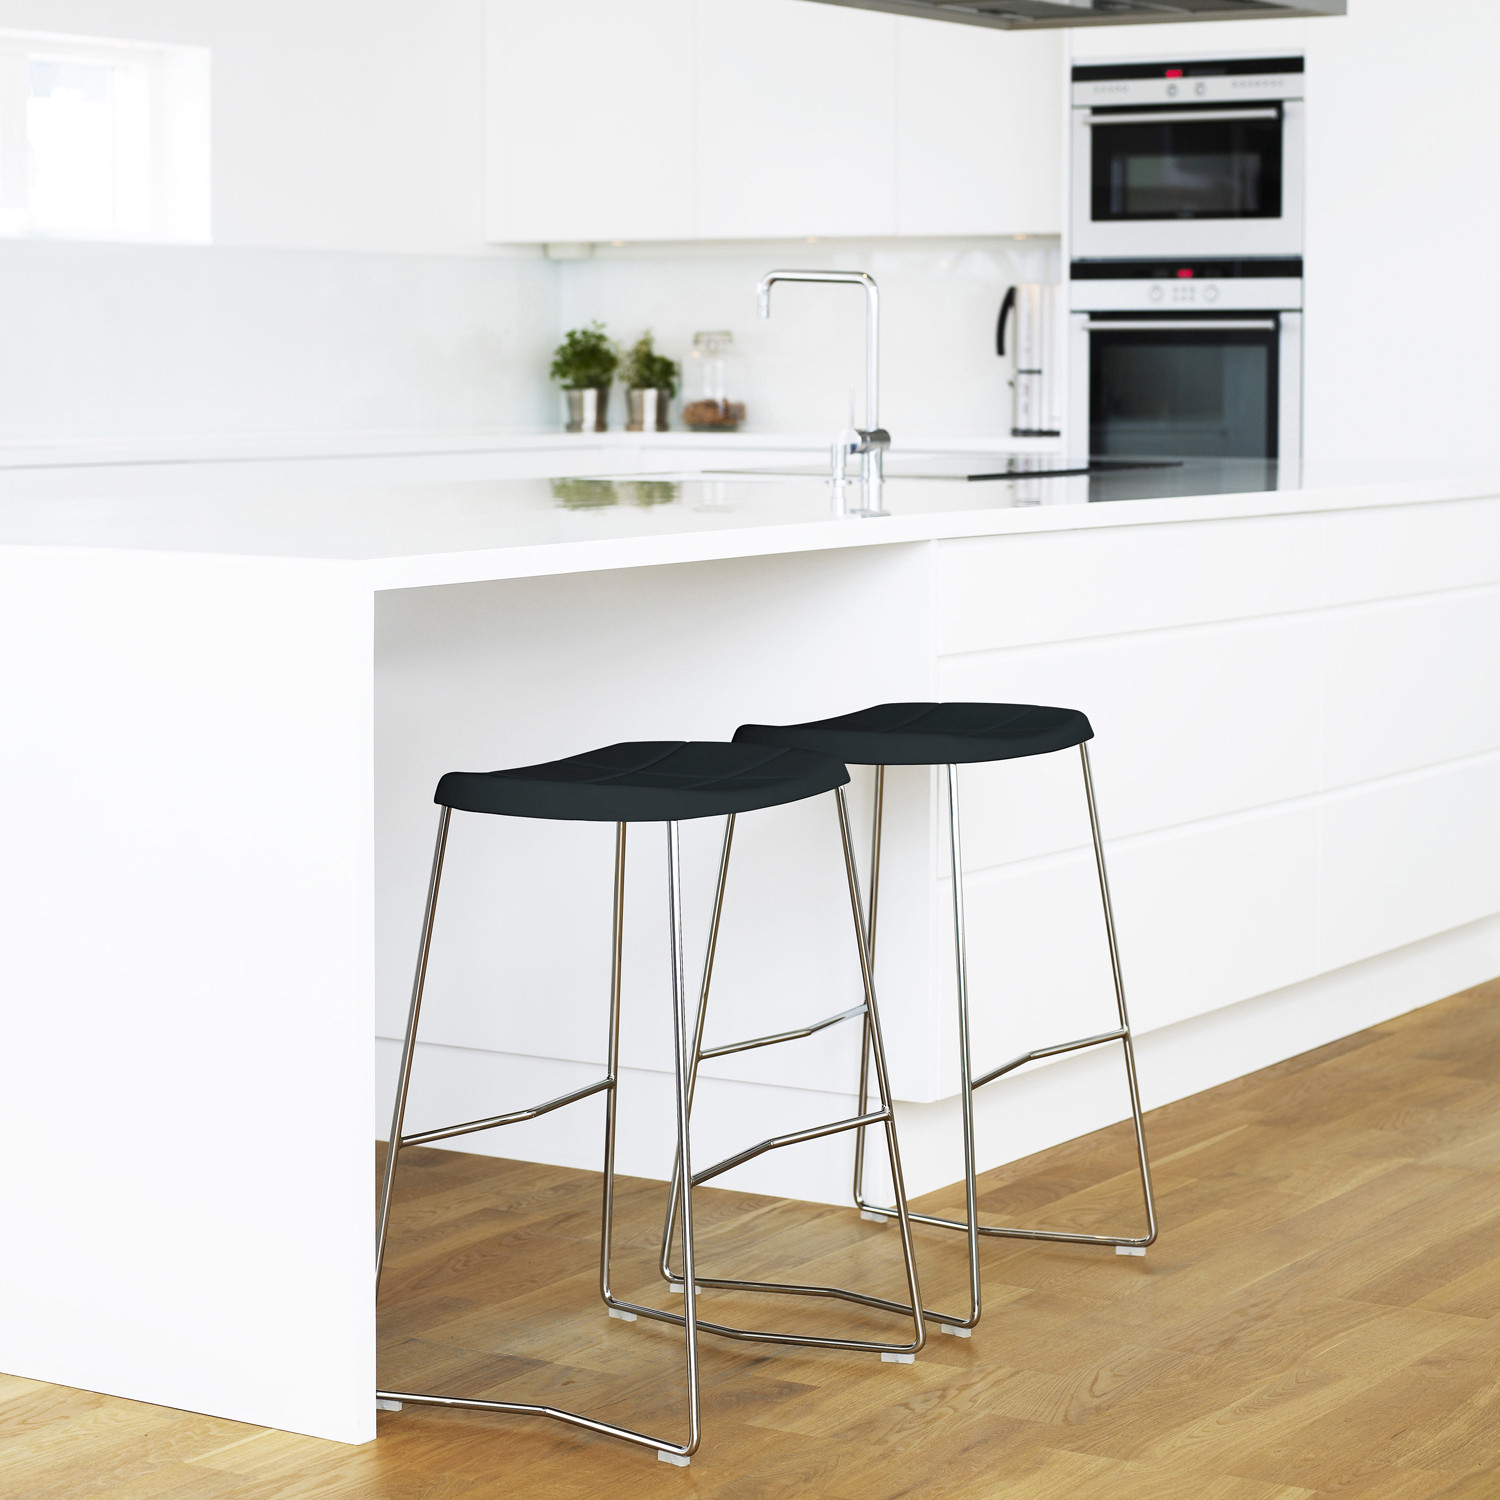 mini bar stools lammhults breakout seating apres furniture. Black Bedroom Furniture Sets. Home Design Ideas